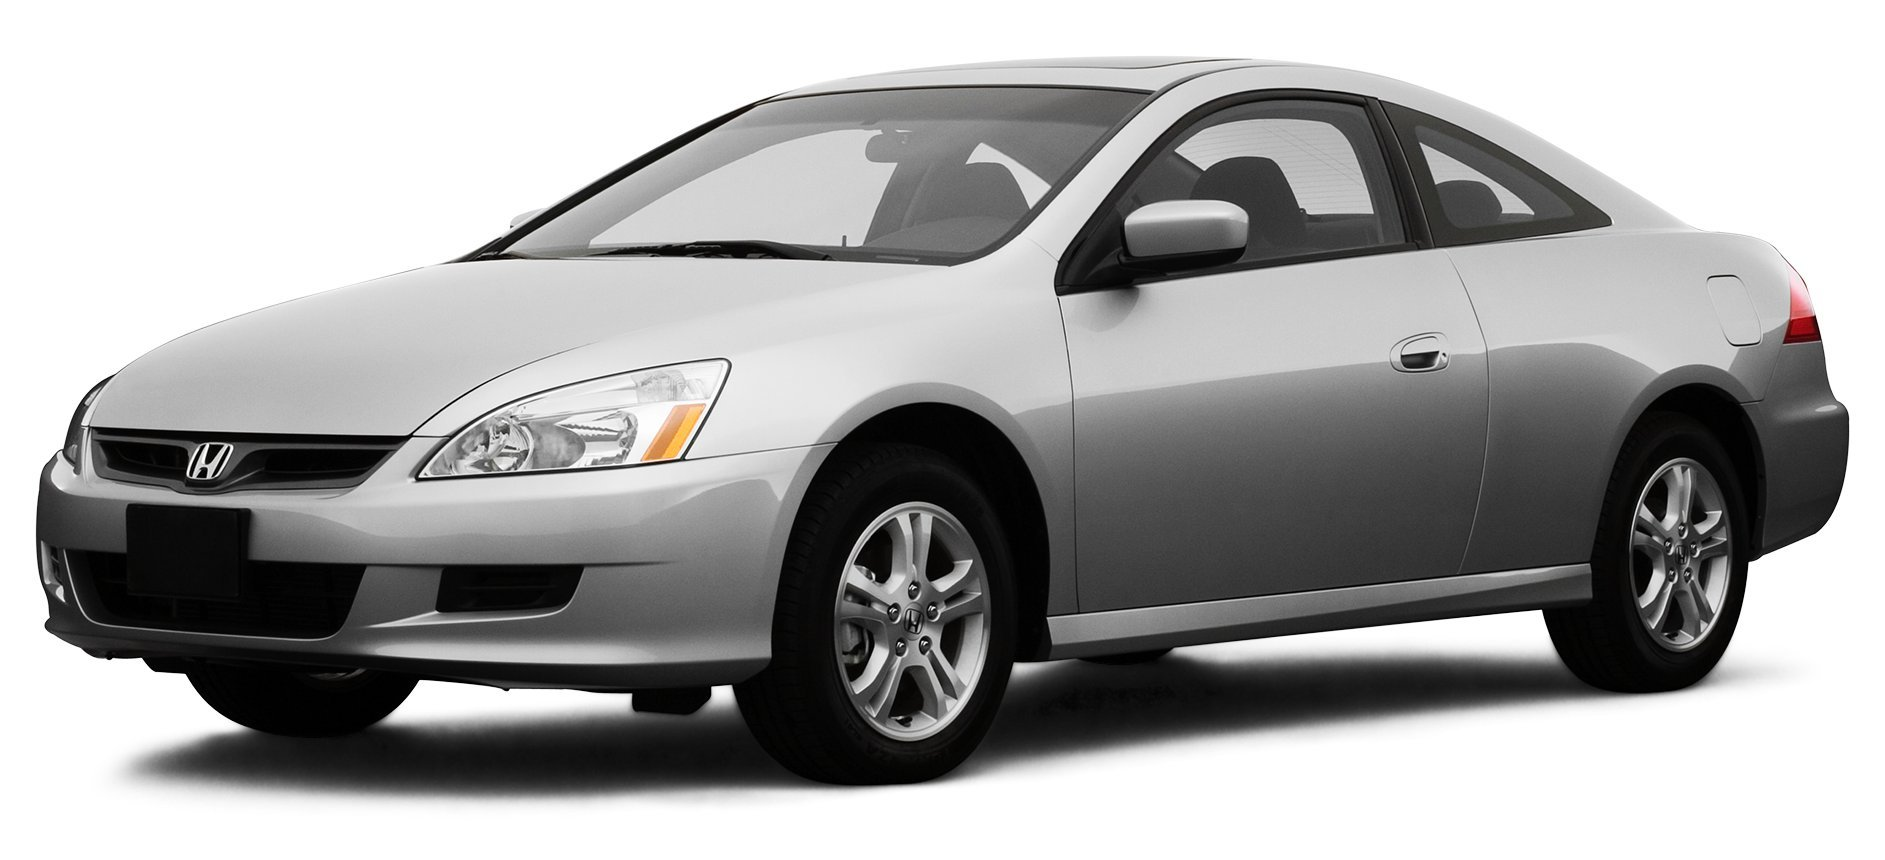 Amazon Com 2007 Honda Accord Reviews Images And Specs